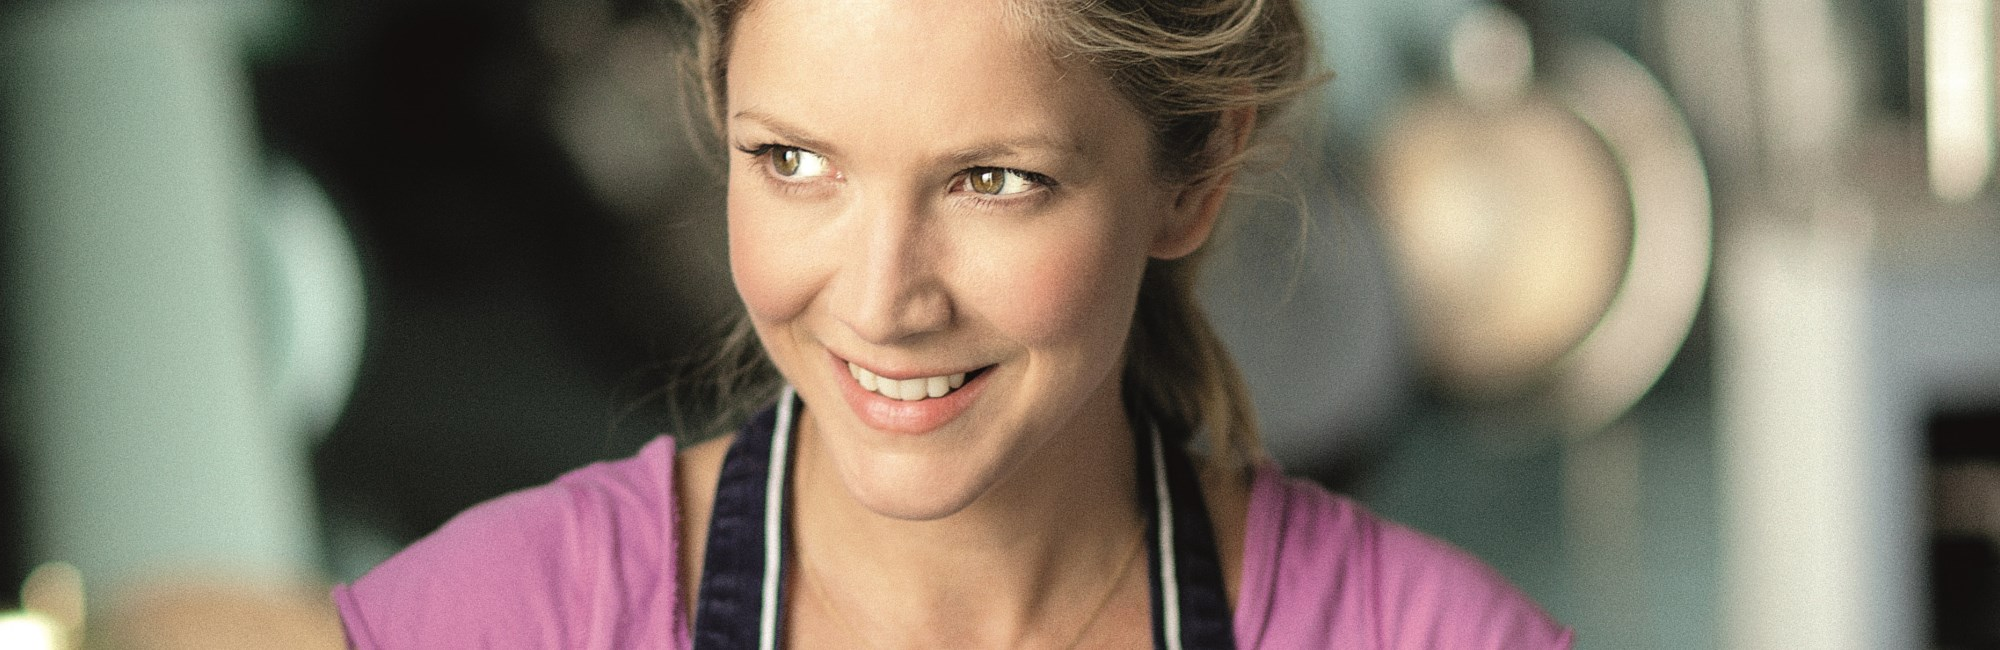 Sheekey Guest Chef Series - Lisa Faulkner